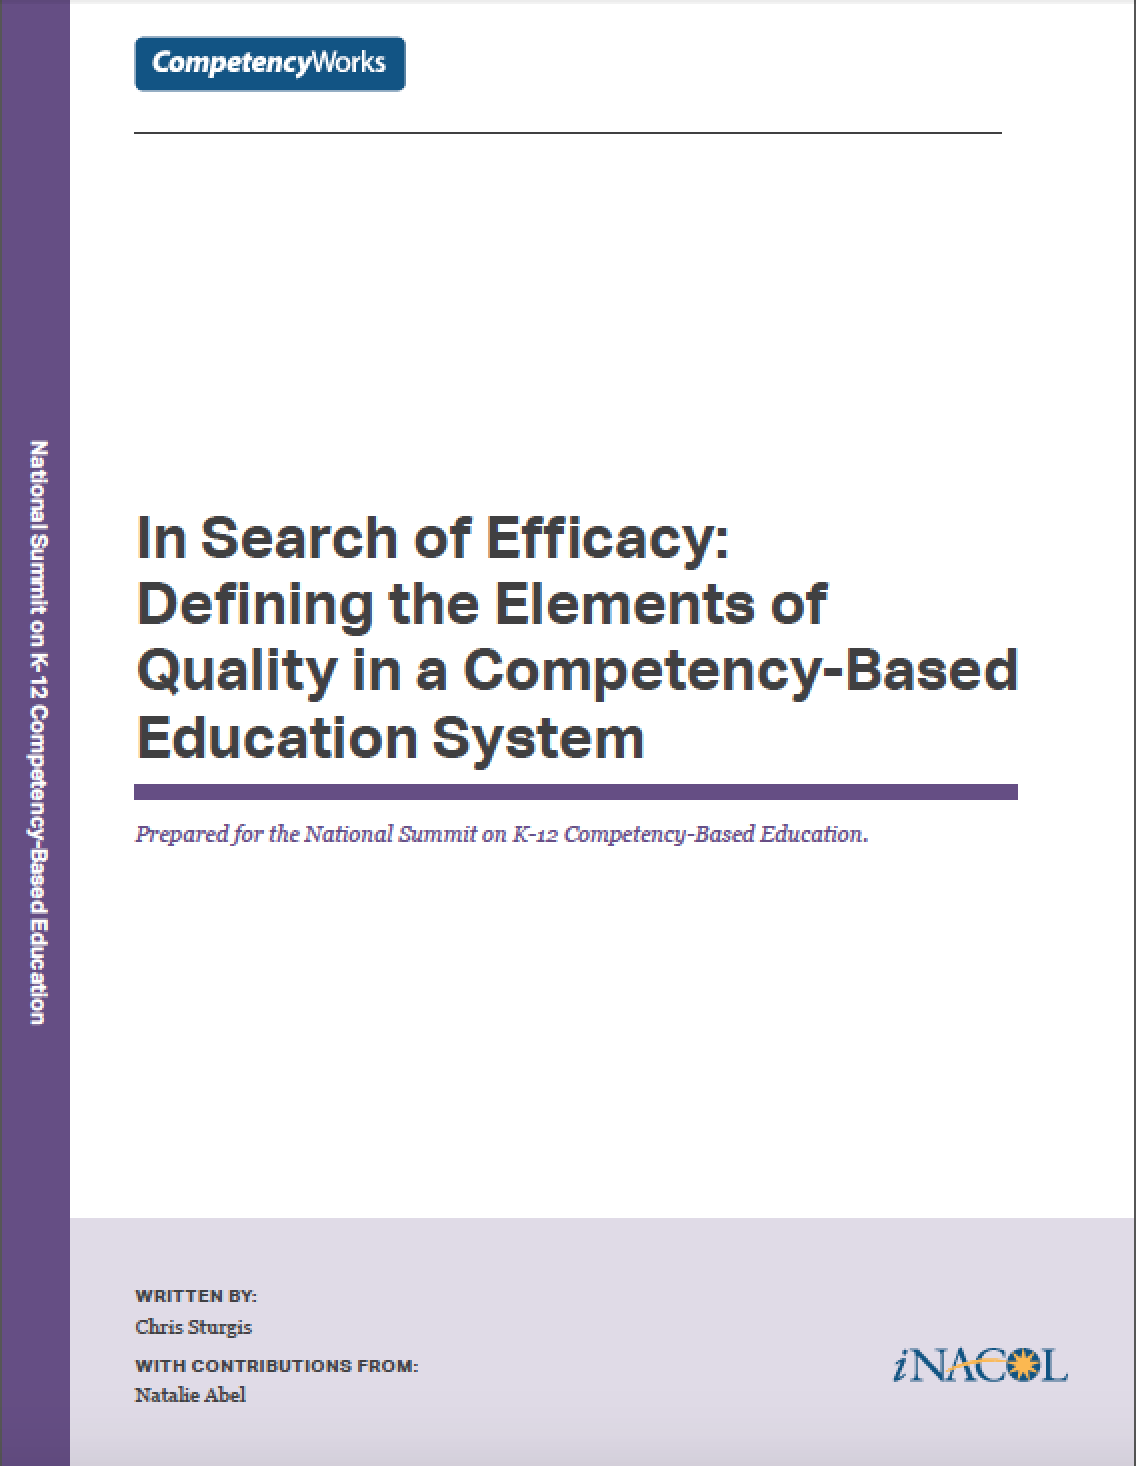 In Search of Efficacy